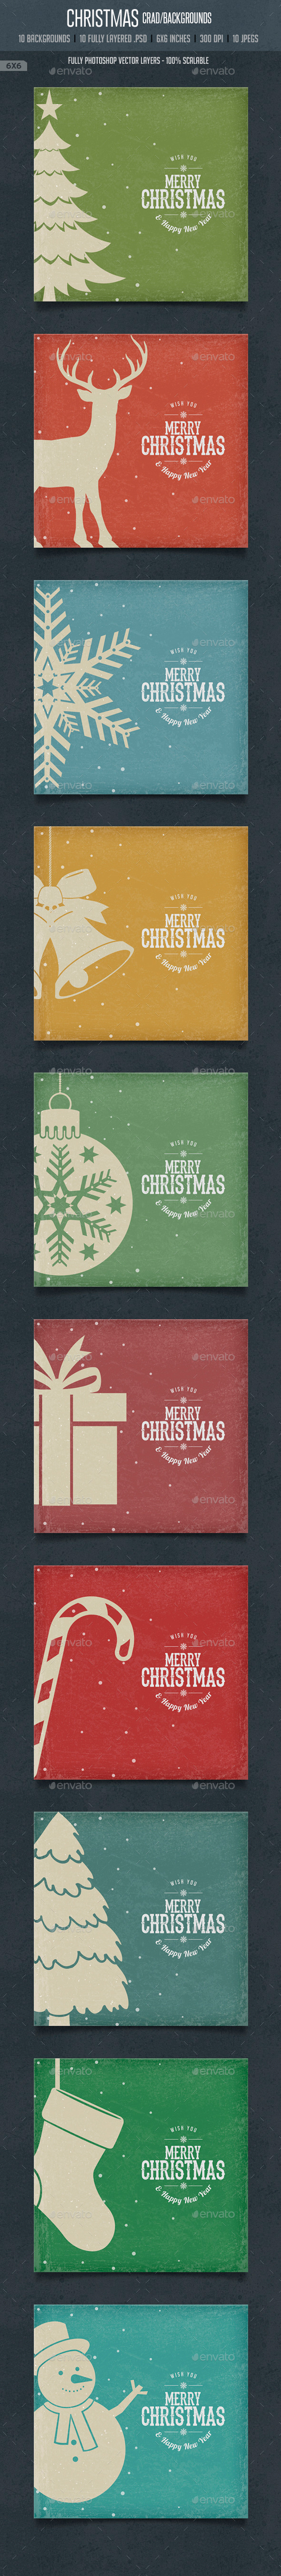 GraphicRiver Vintage Christmas Square Cards Backgrounds 9602298